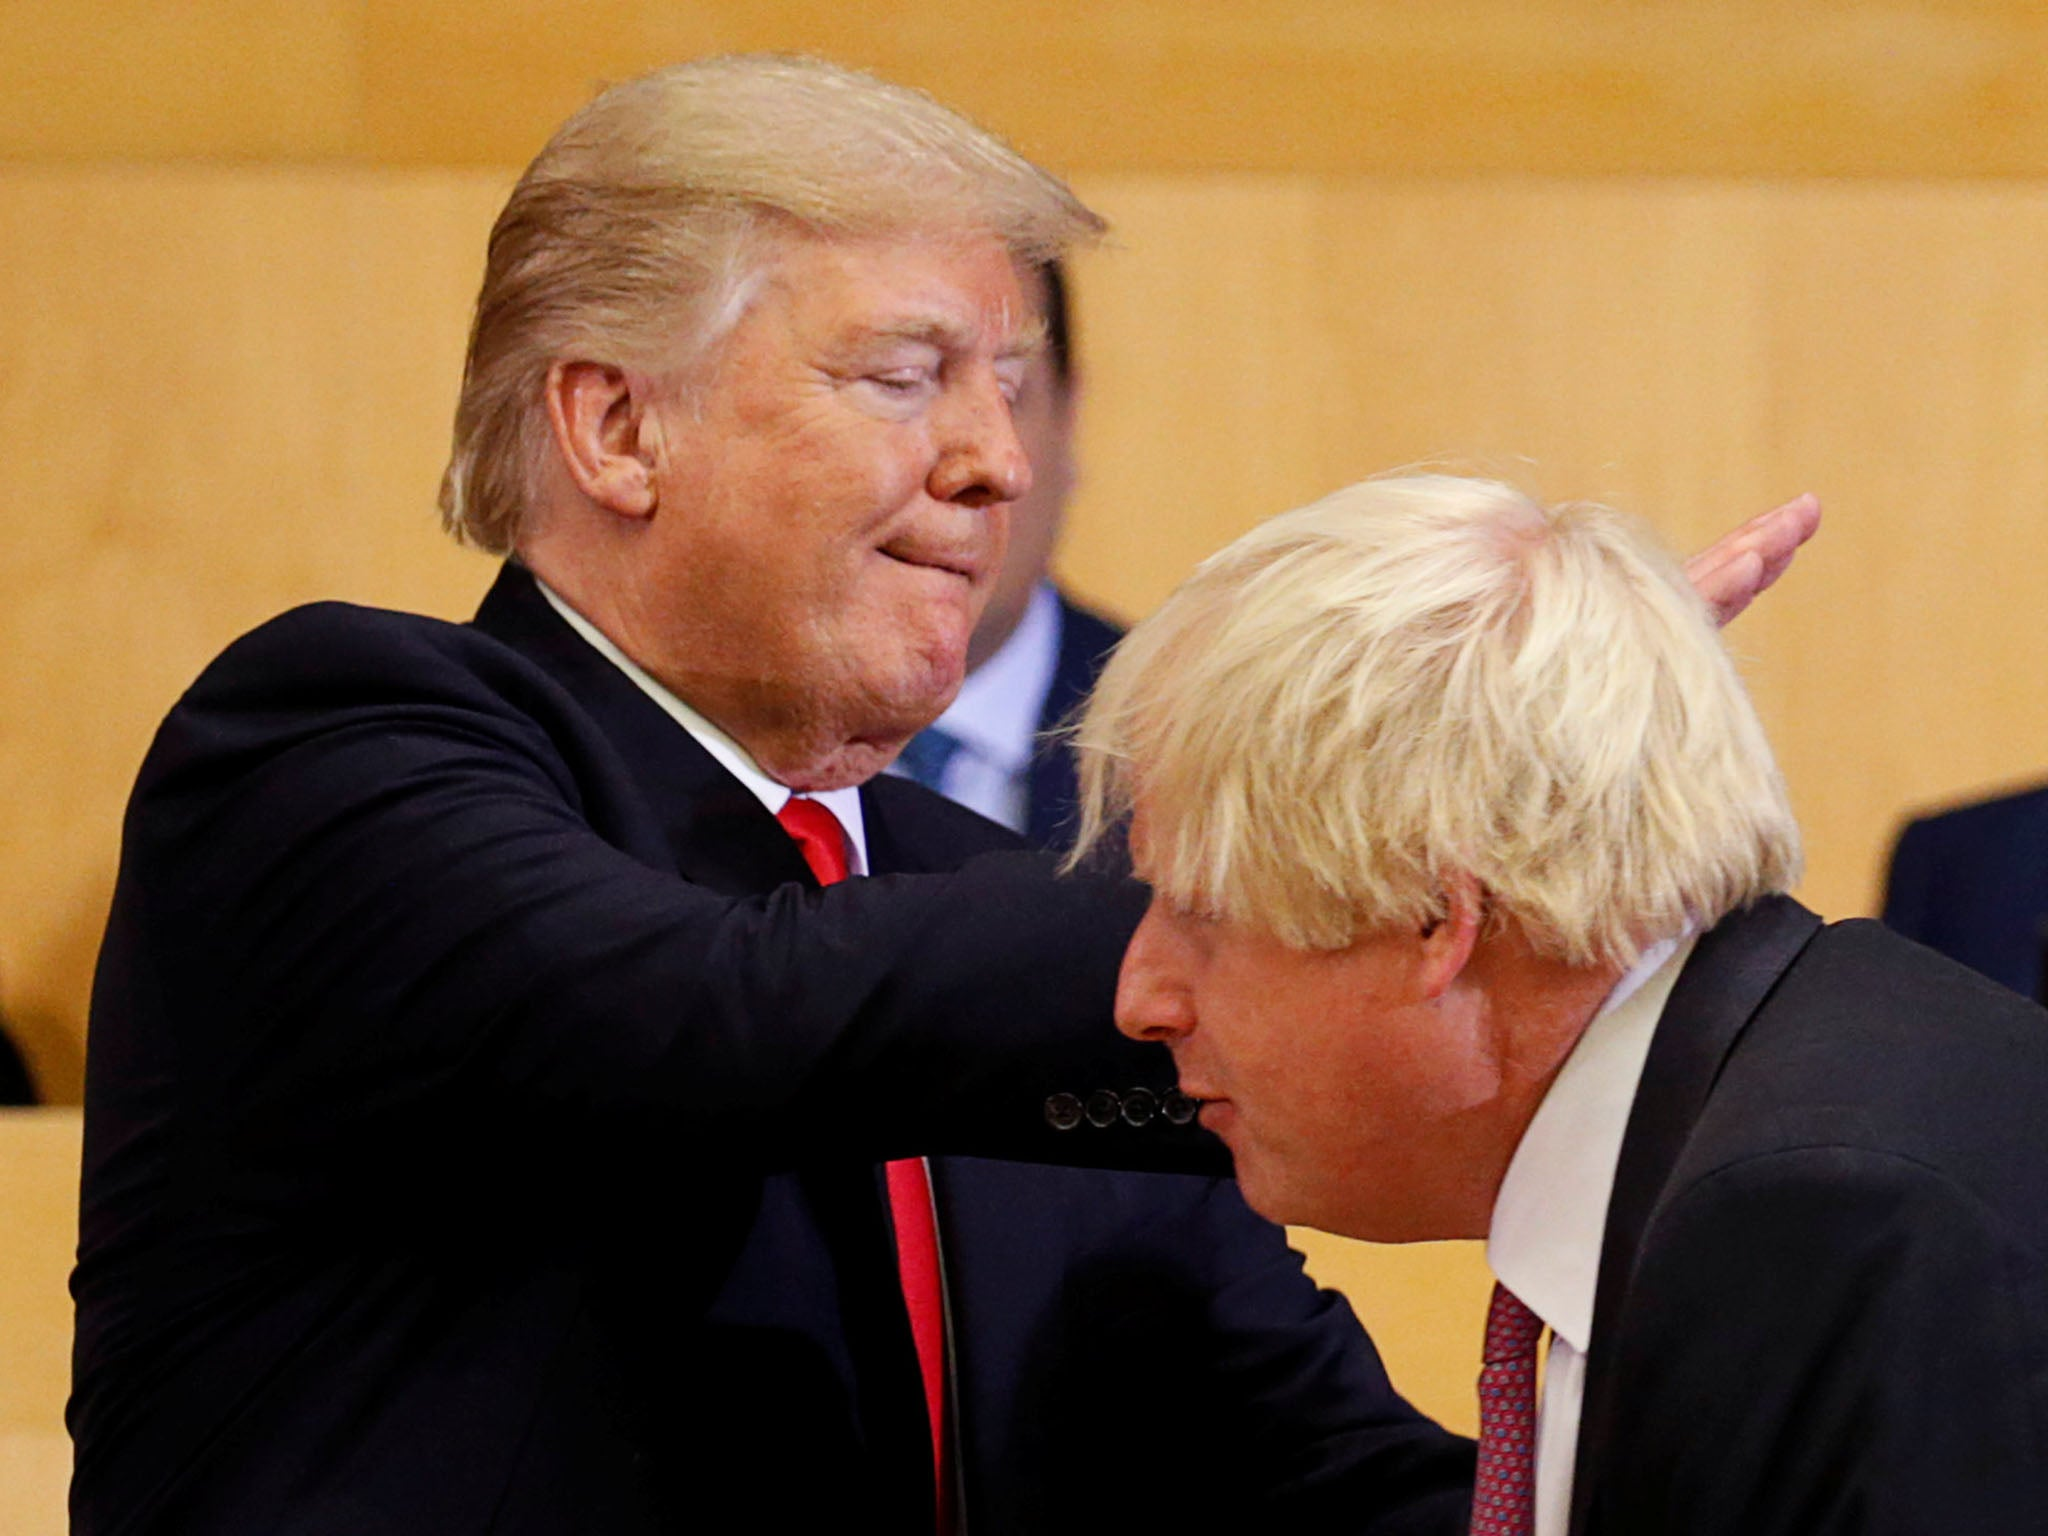 If Boris Johnson follows in the footsteps of Trump's 'loyalty first' politics, we're all doomed